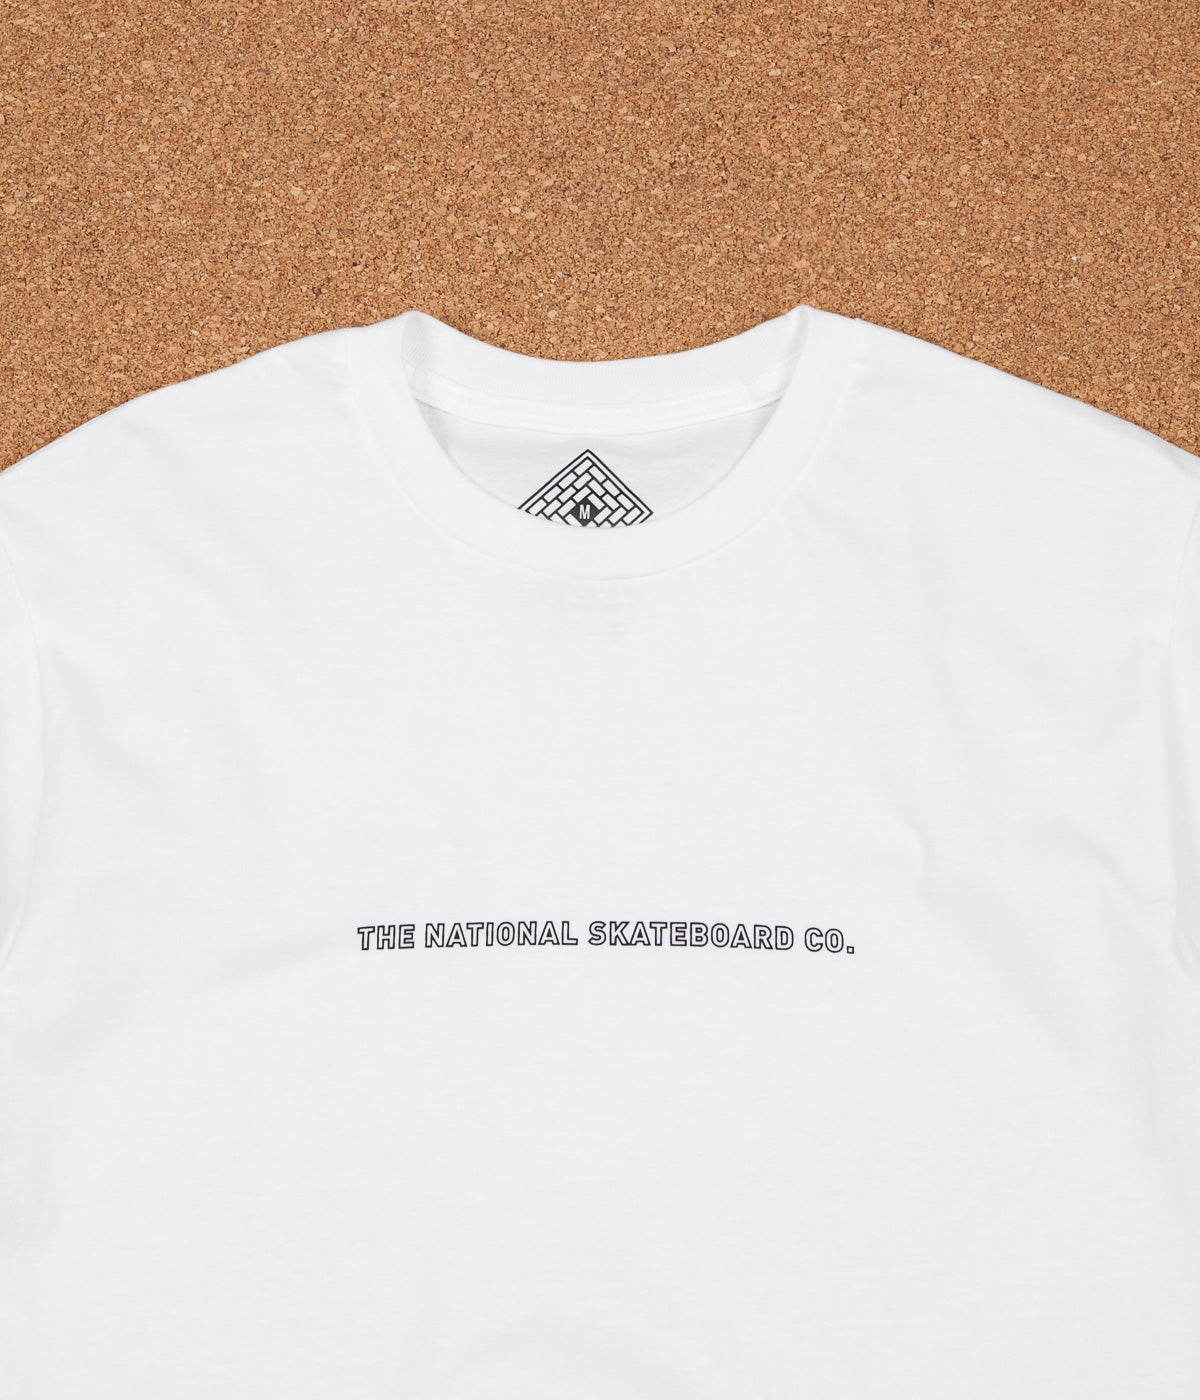 The National Skateboard Company Classic T-Shirt - White